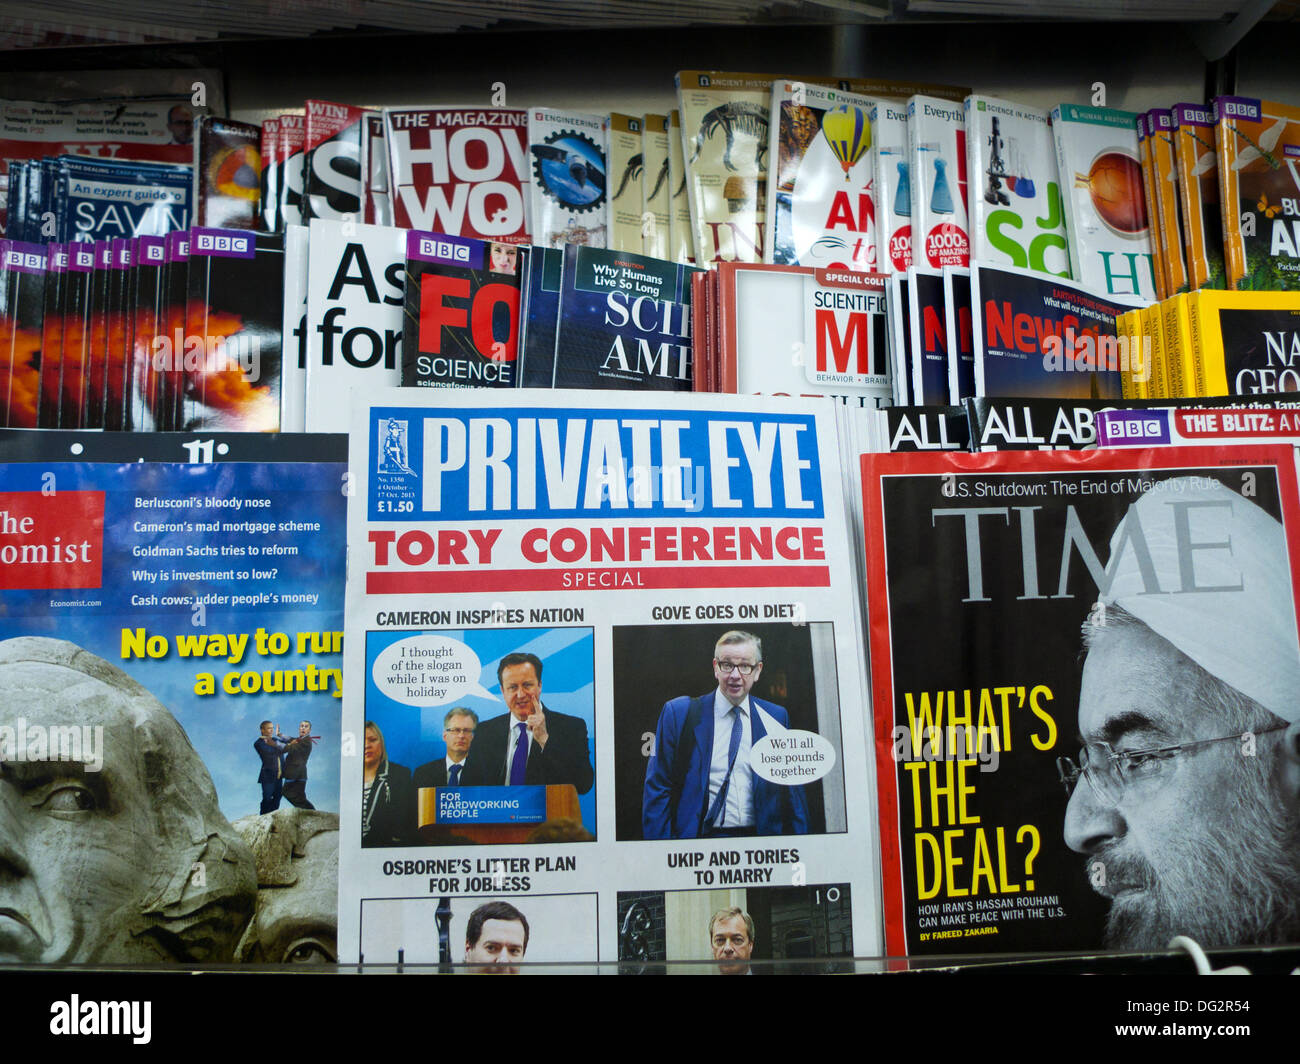 Private Eye Magazine Tory Conference issue - Stock Image